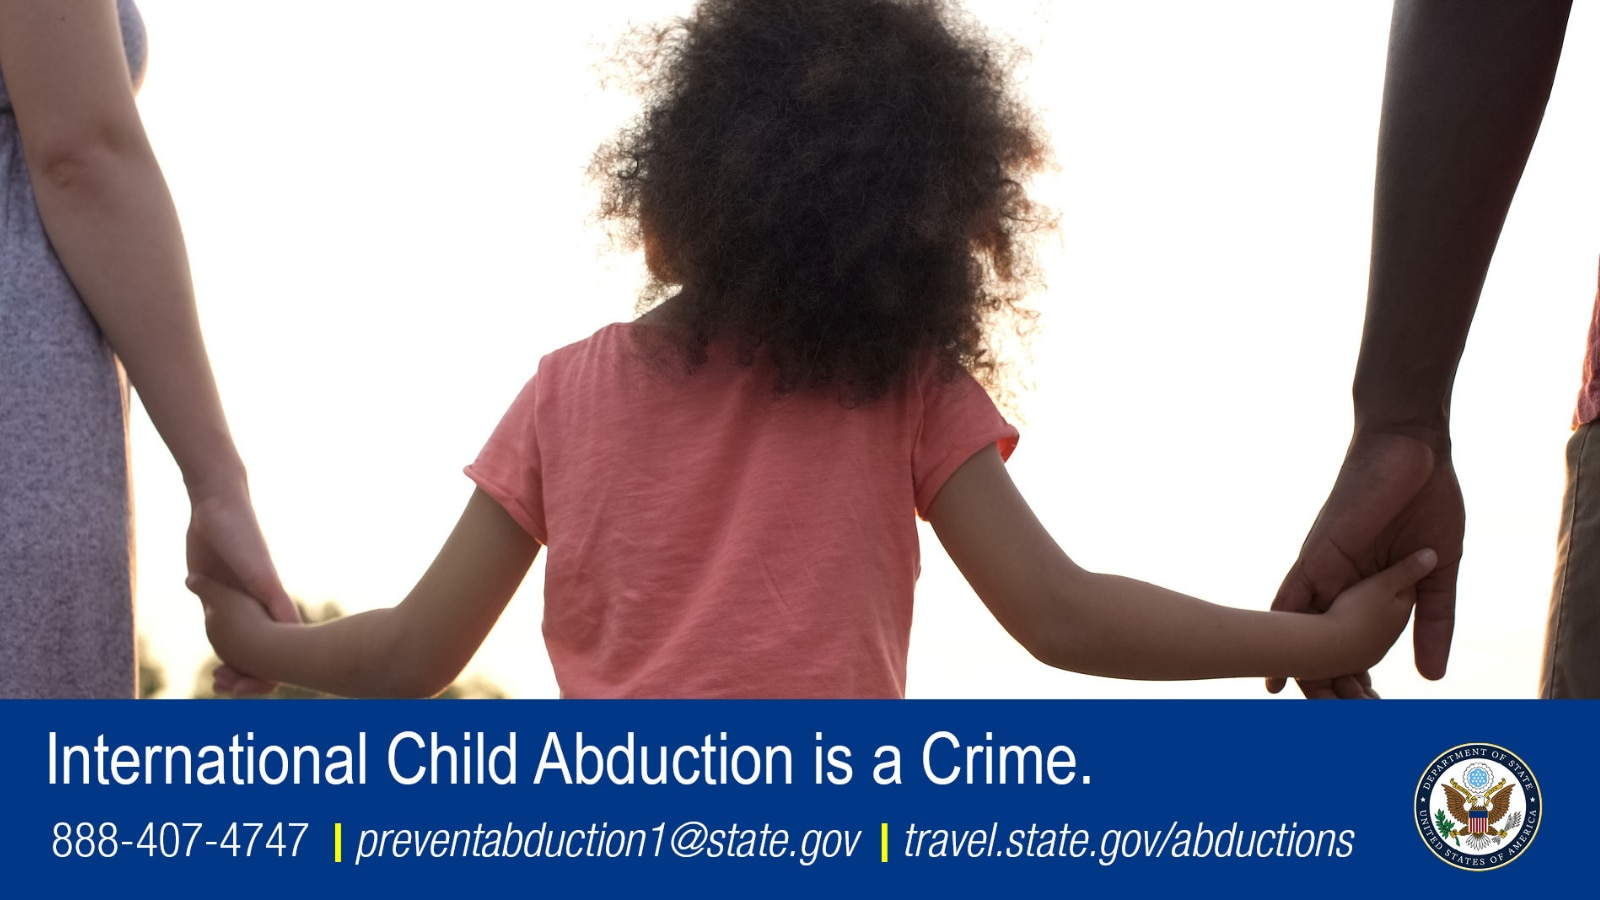 International Child Abduction is a Crime